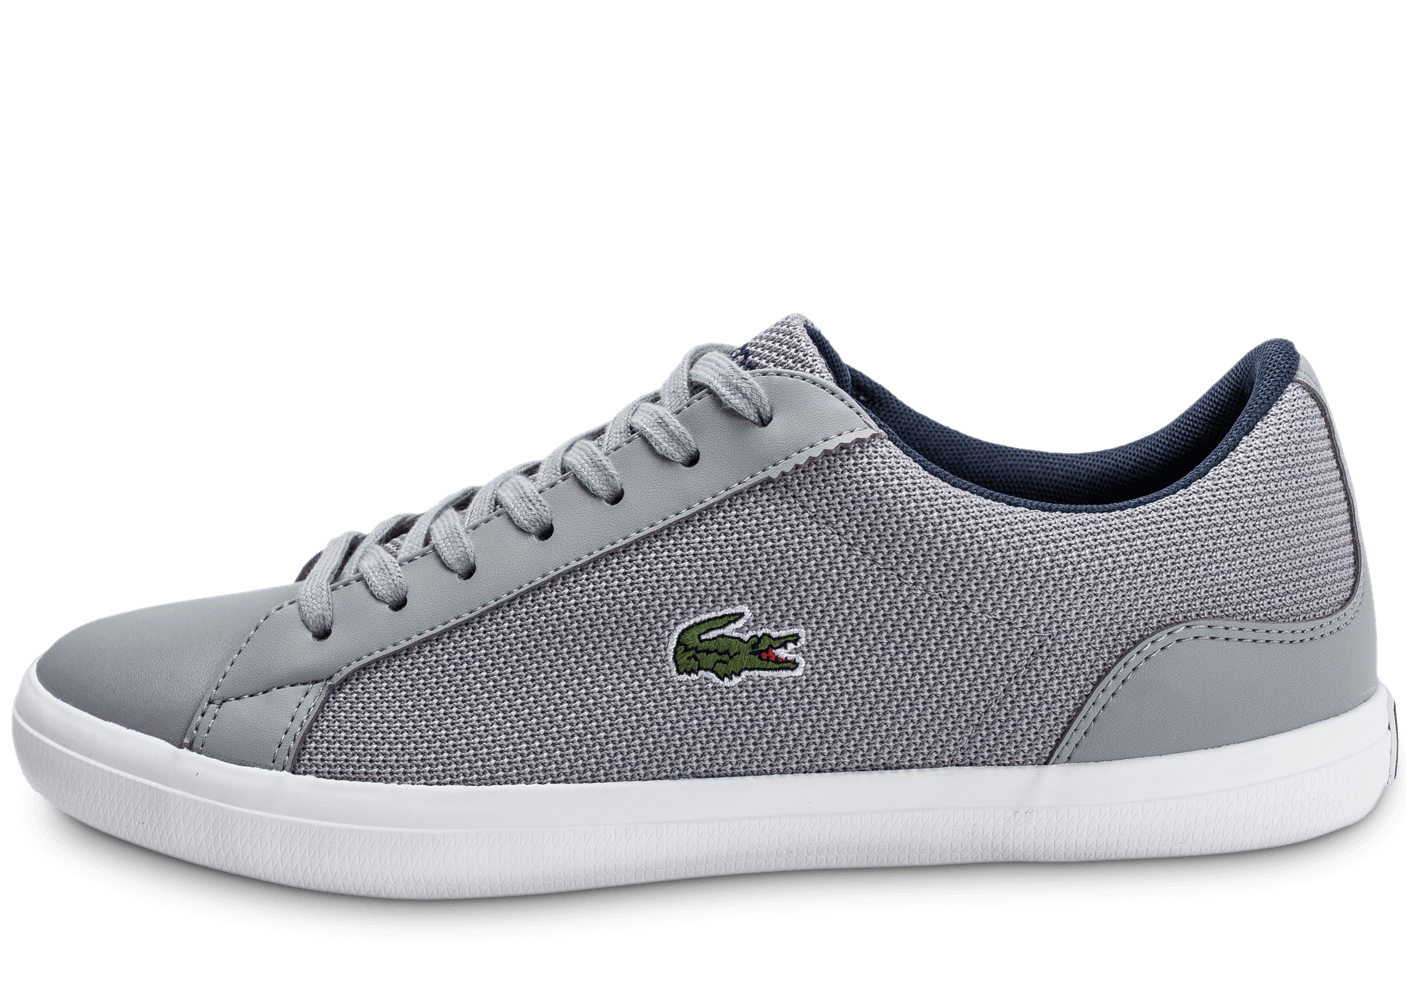 lacoste lerond nylon grise chaussures homme chausport. Black Bedroom Furniture Sets. Home Design Ideas